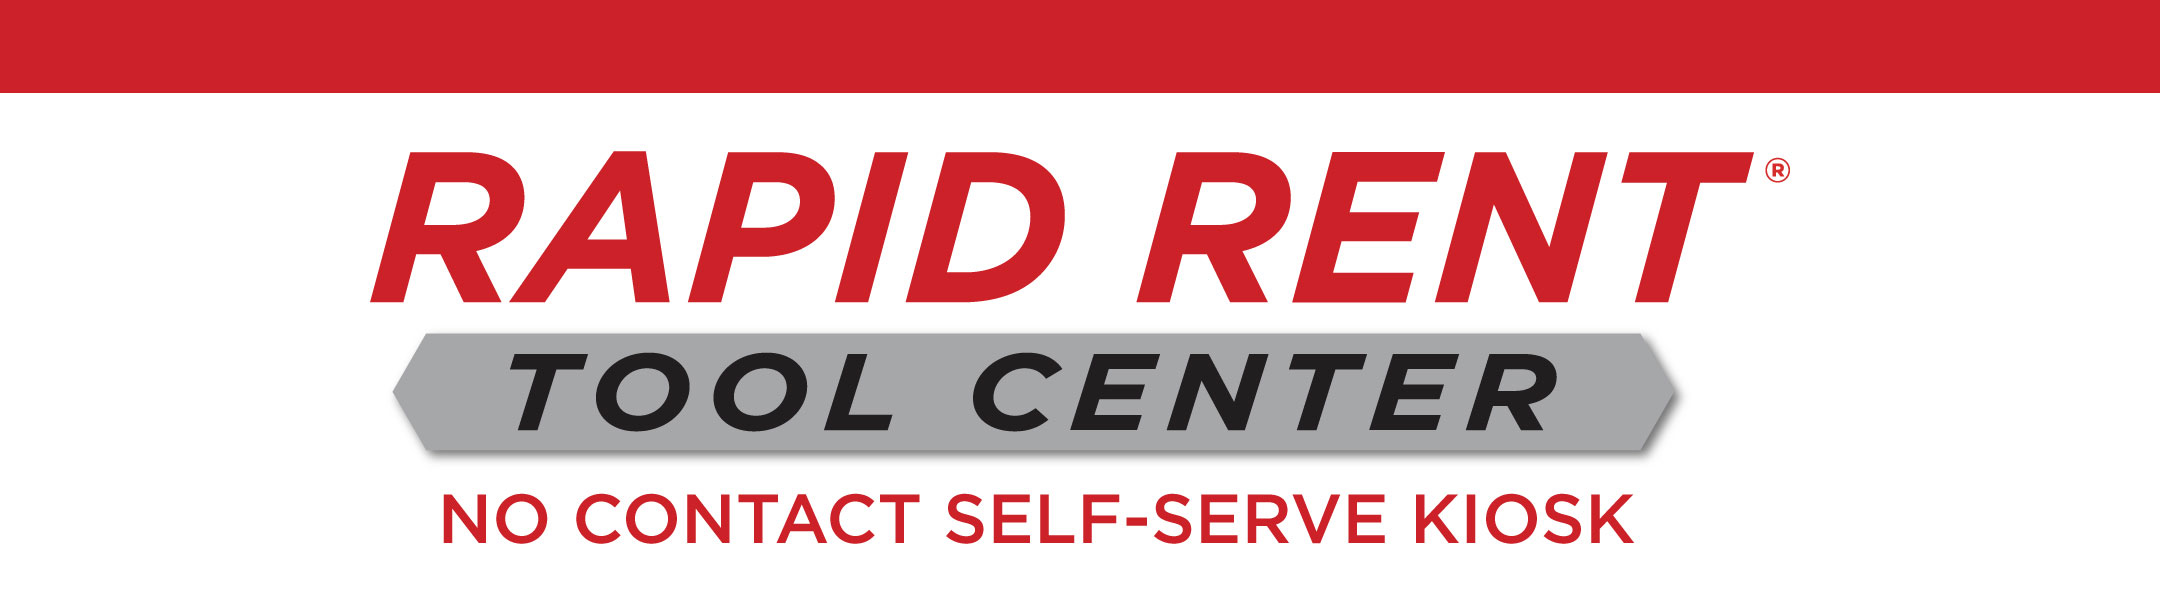 tool center header 2021 - RapidRent Tool Center